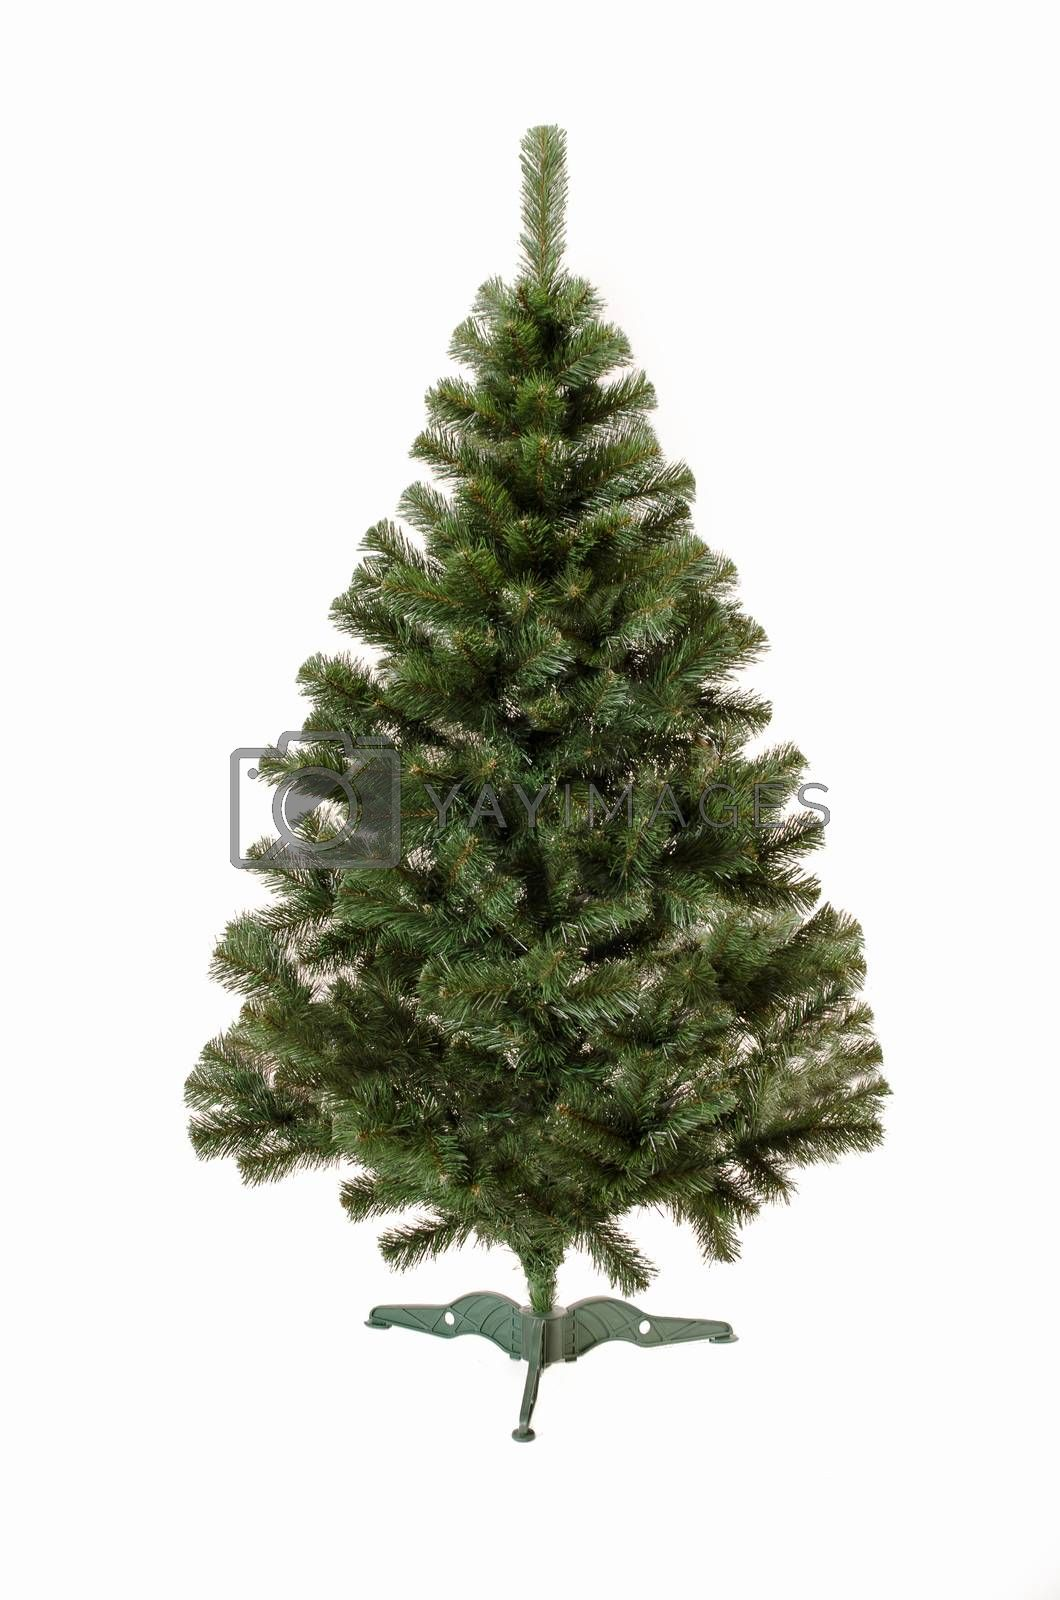 Royalty free image of Artificial Christmas tree with isolated background by Morfey713